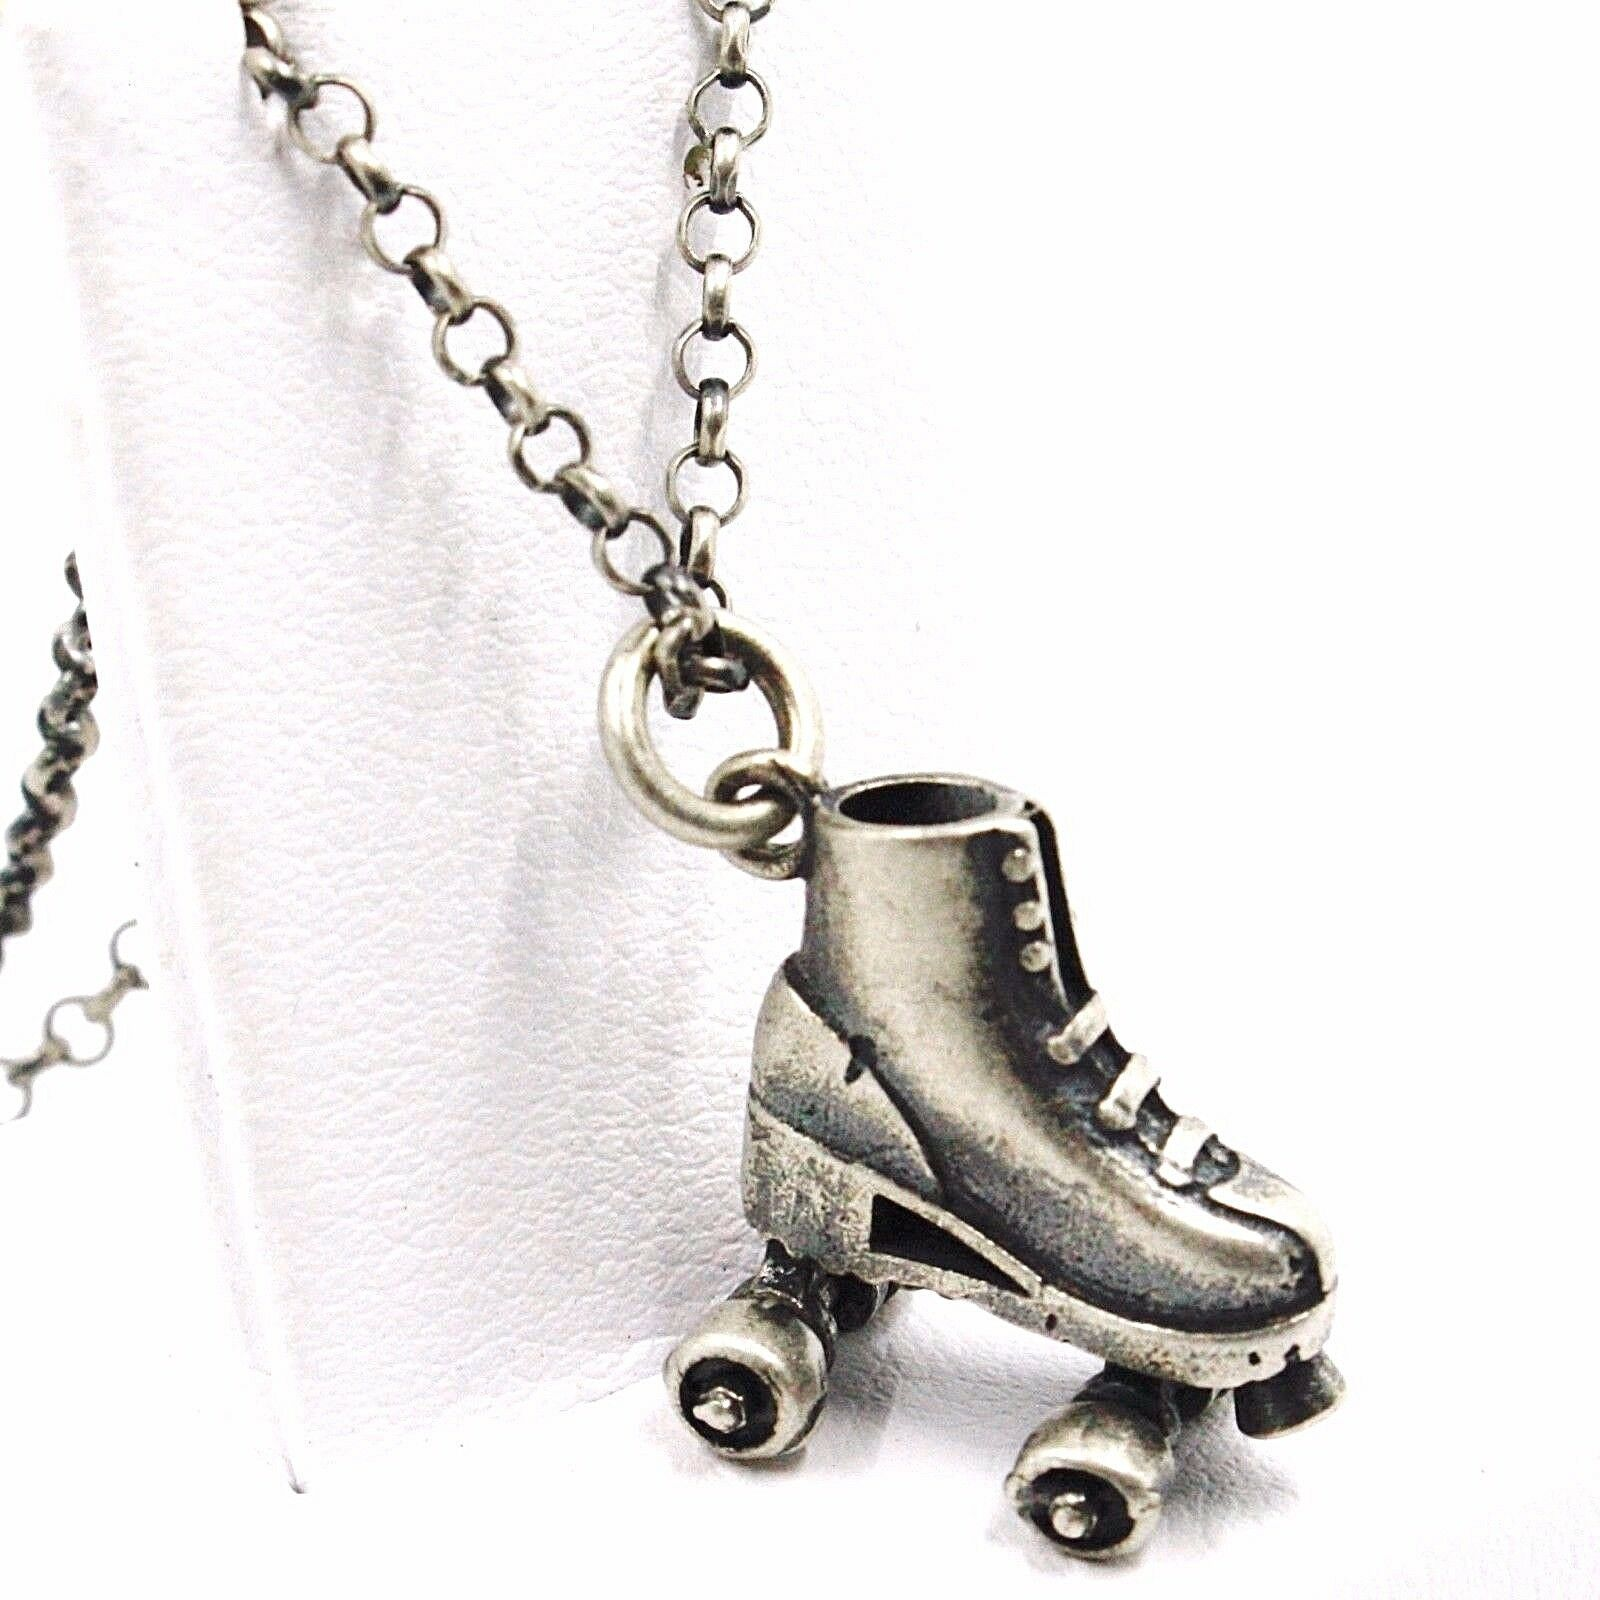 Necklace and Pendant, Silver 925, Burnished Satin, Skate to Castors, Chain